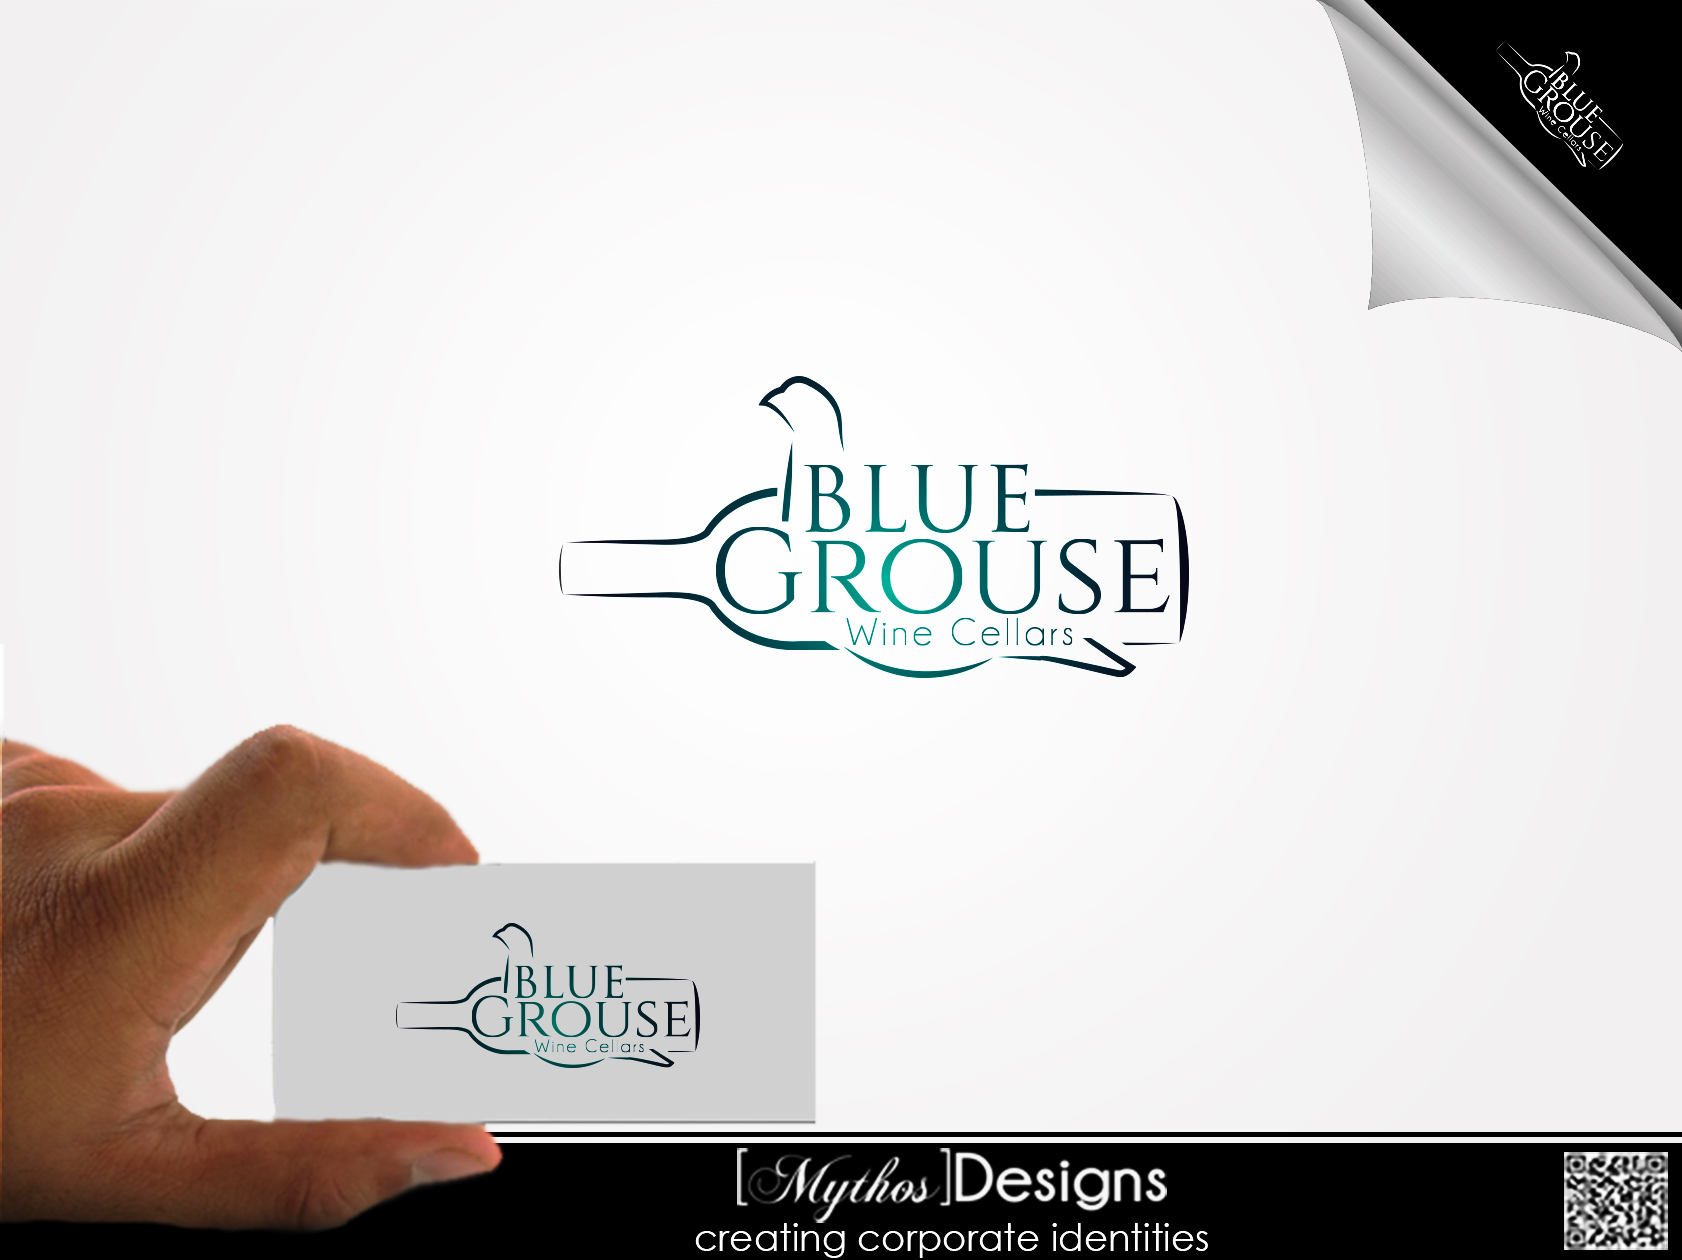 Logo Design by Mythos Designs - Entry No. 85 in the Logo Design Contest Creative Logo Design for Blue Grouse Wine Cellars.